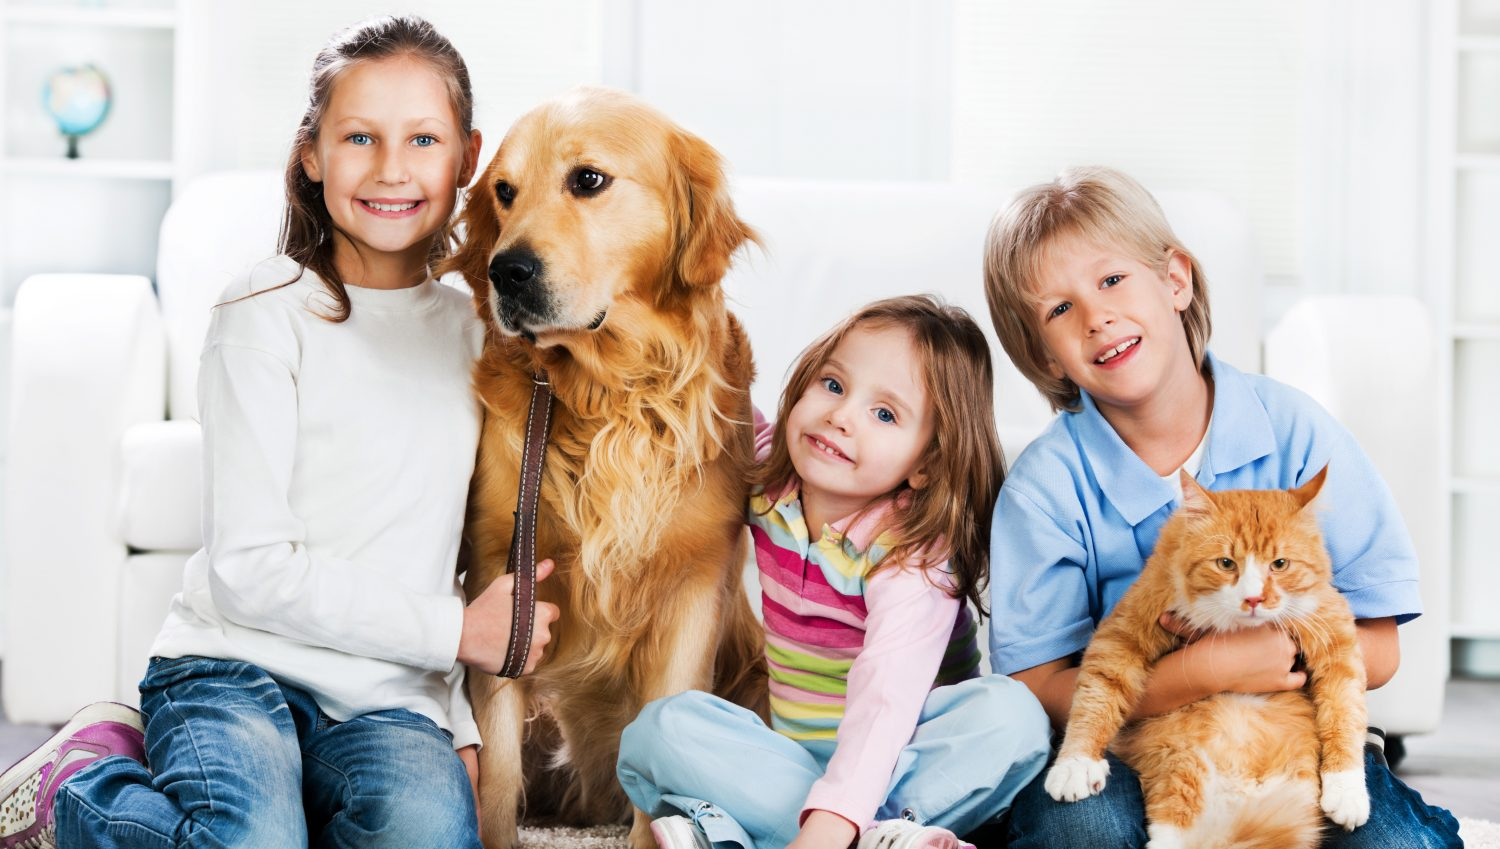 cropped-children-with-animals-sitting-on-the-carpet.jpg